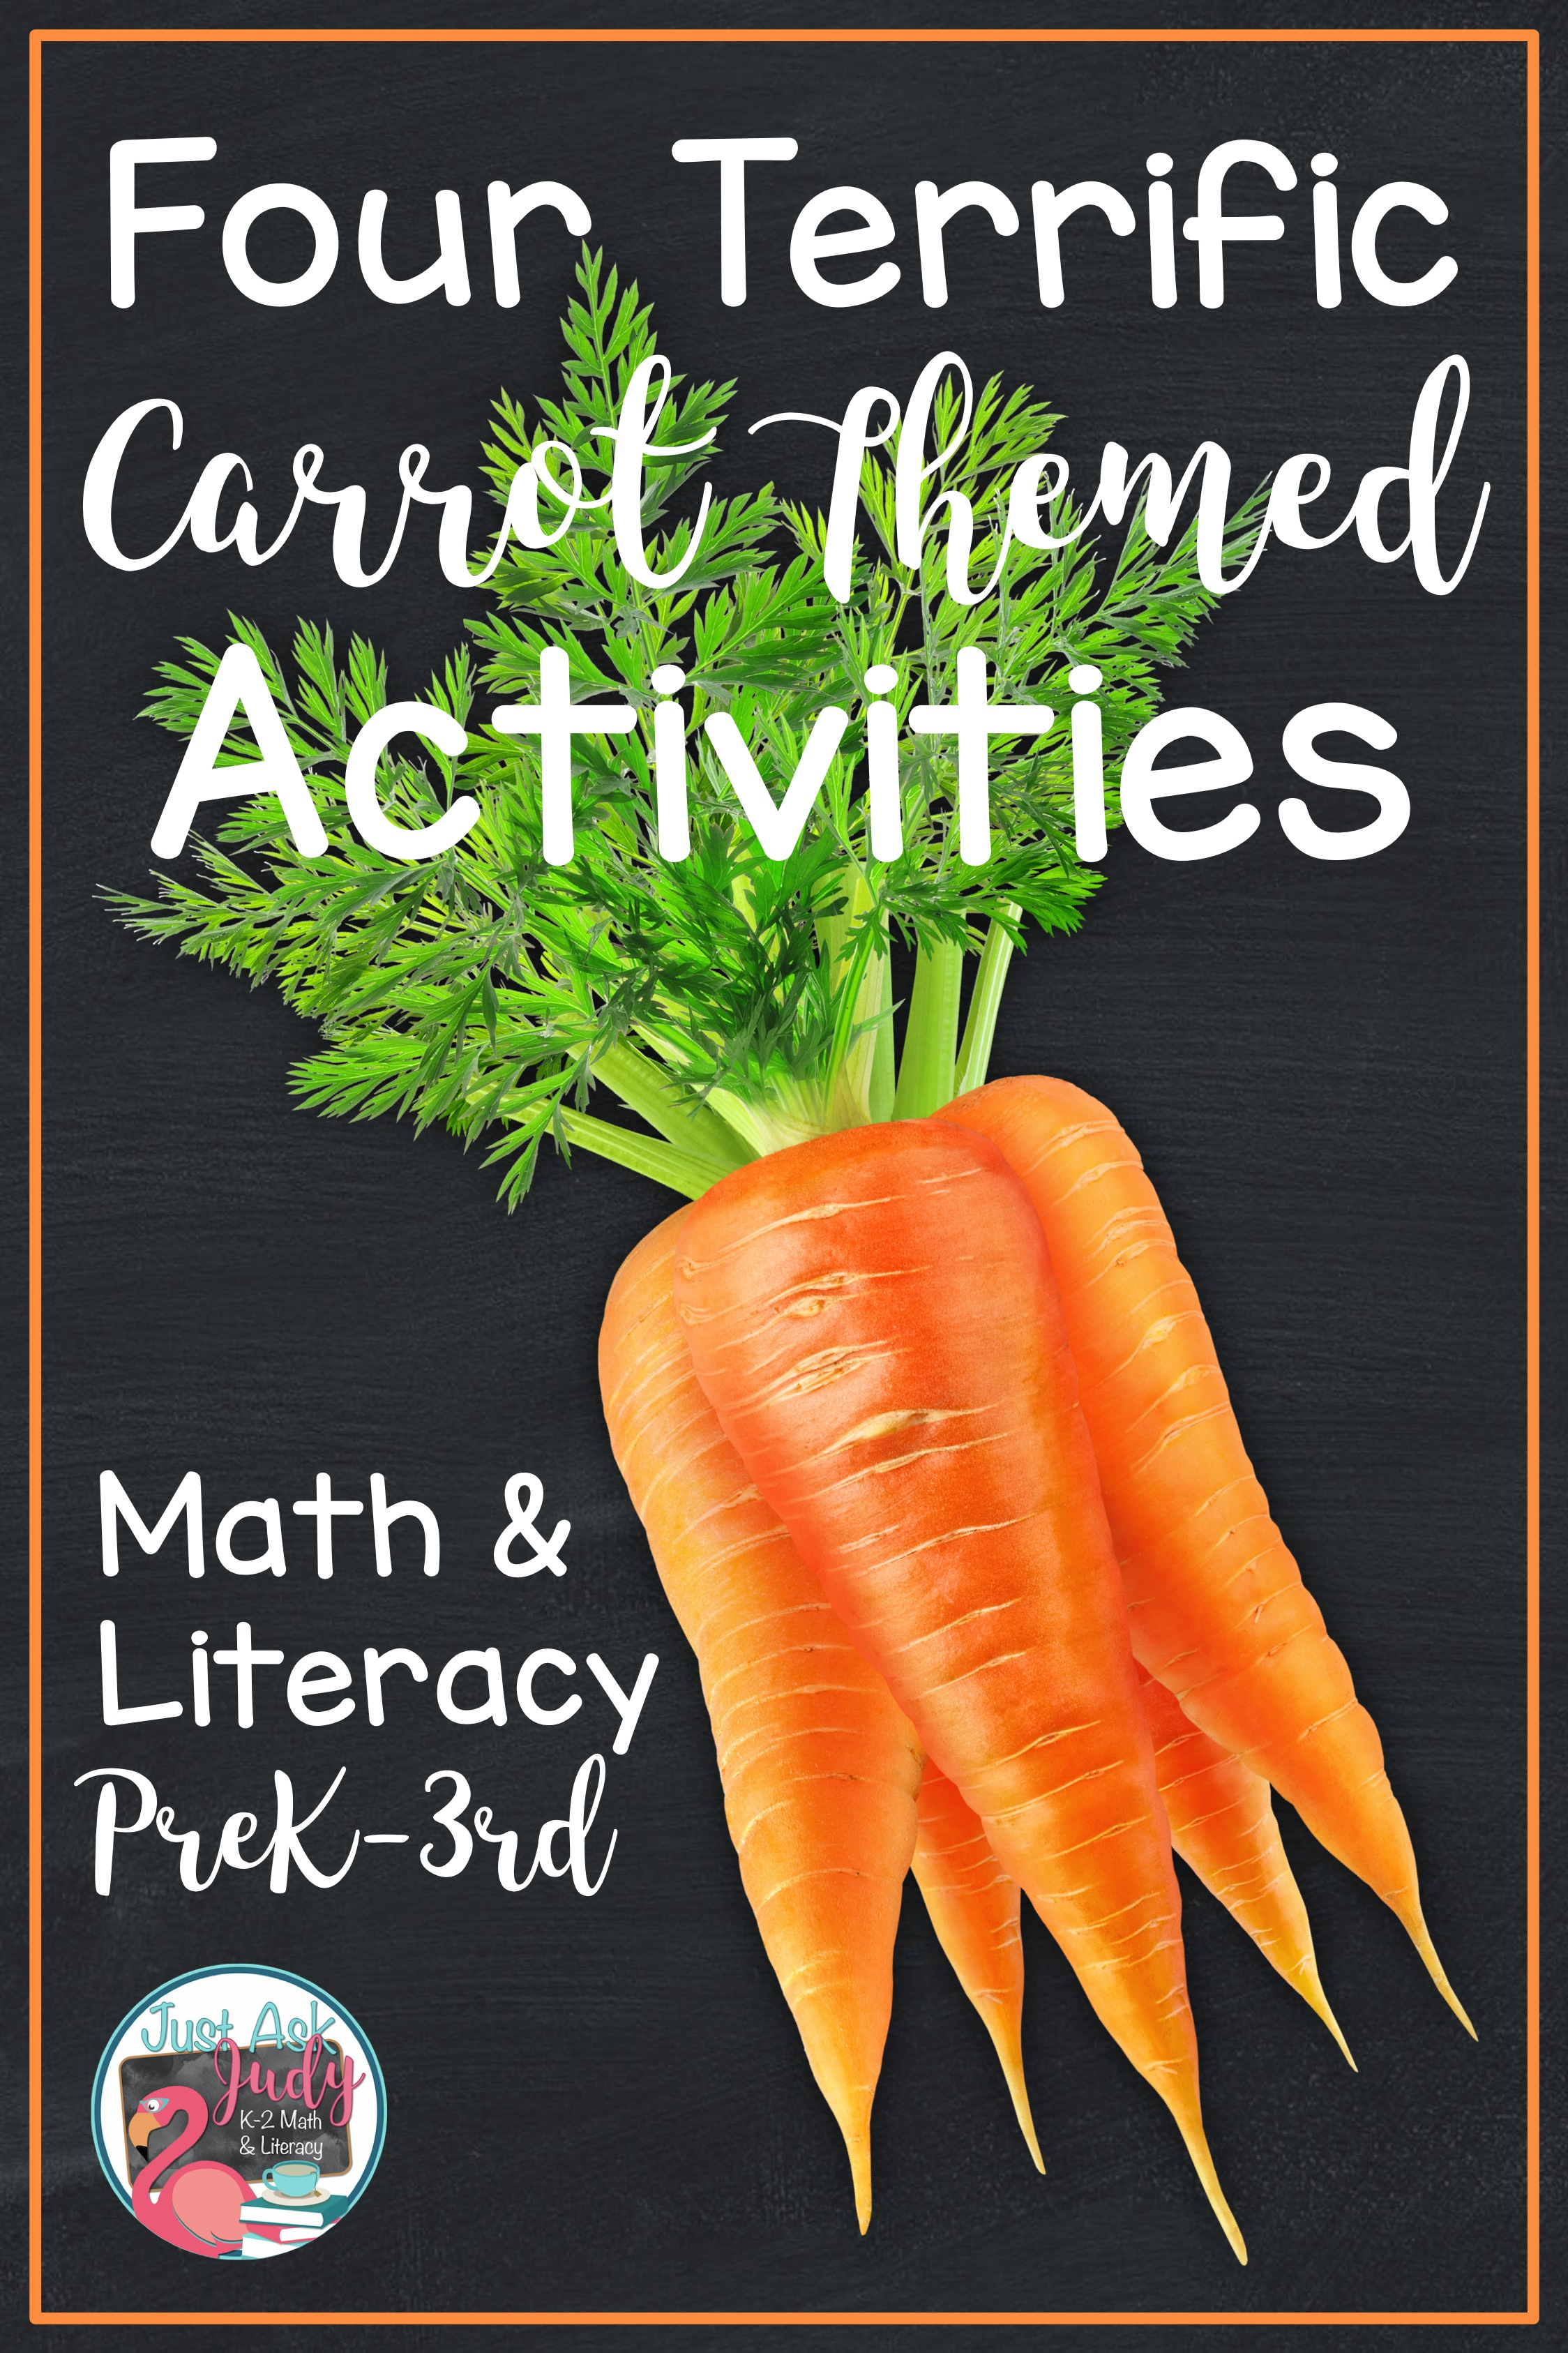 4 Terrific Carrot Themed Math and Literacy Activities - Just Ask Judy